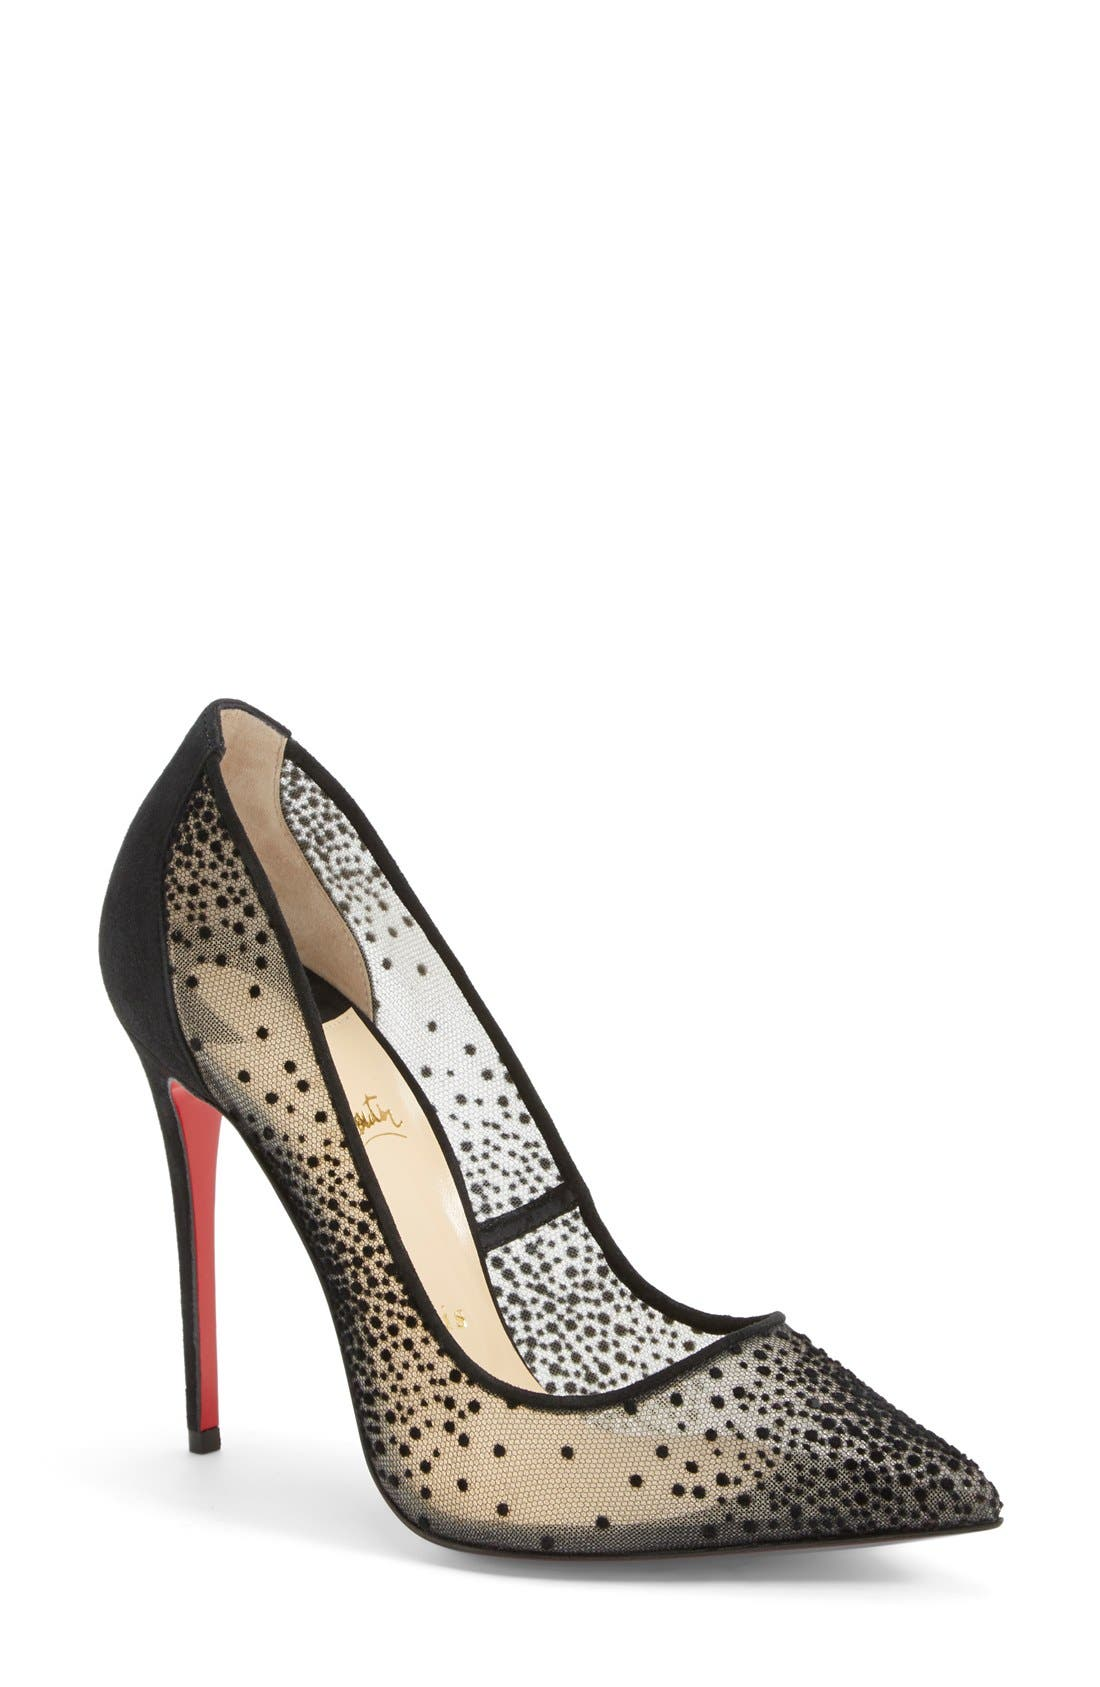 Alternate Image 1 Selected - Christian Louboutin 'Follies' Mesh Pointy Toe Pump